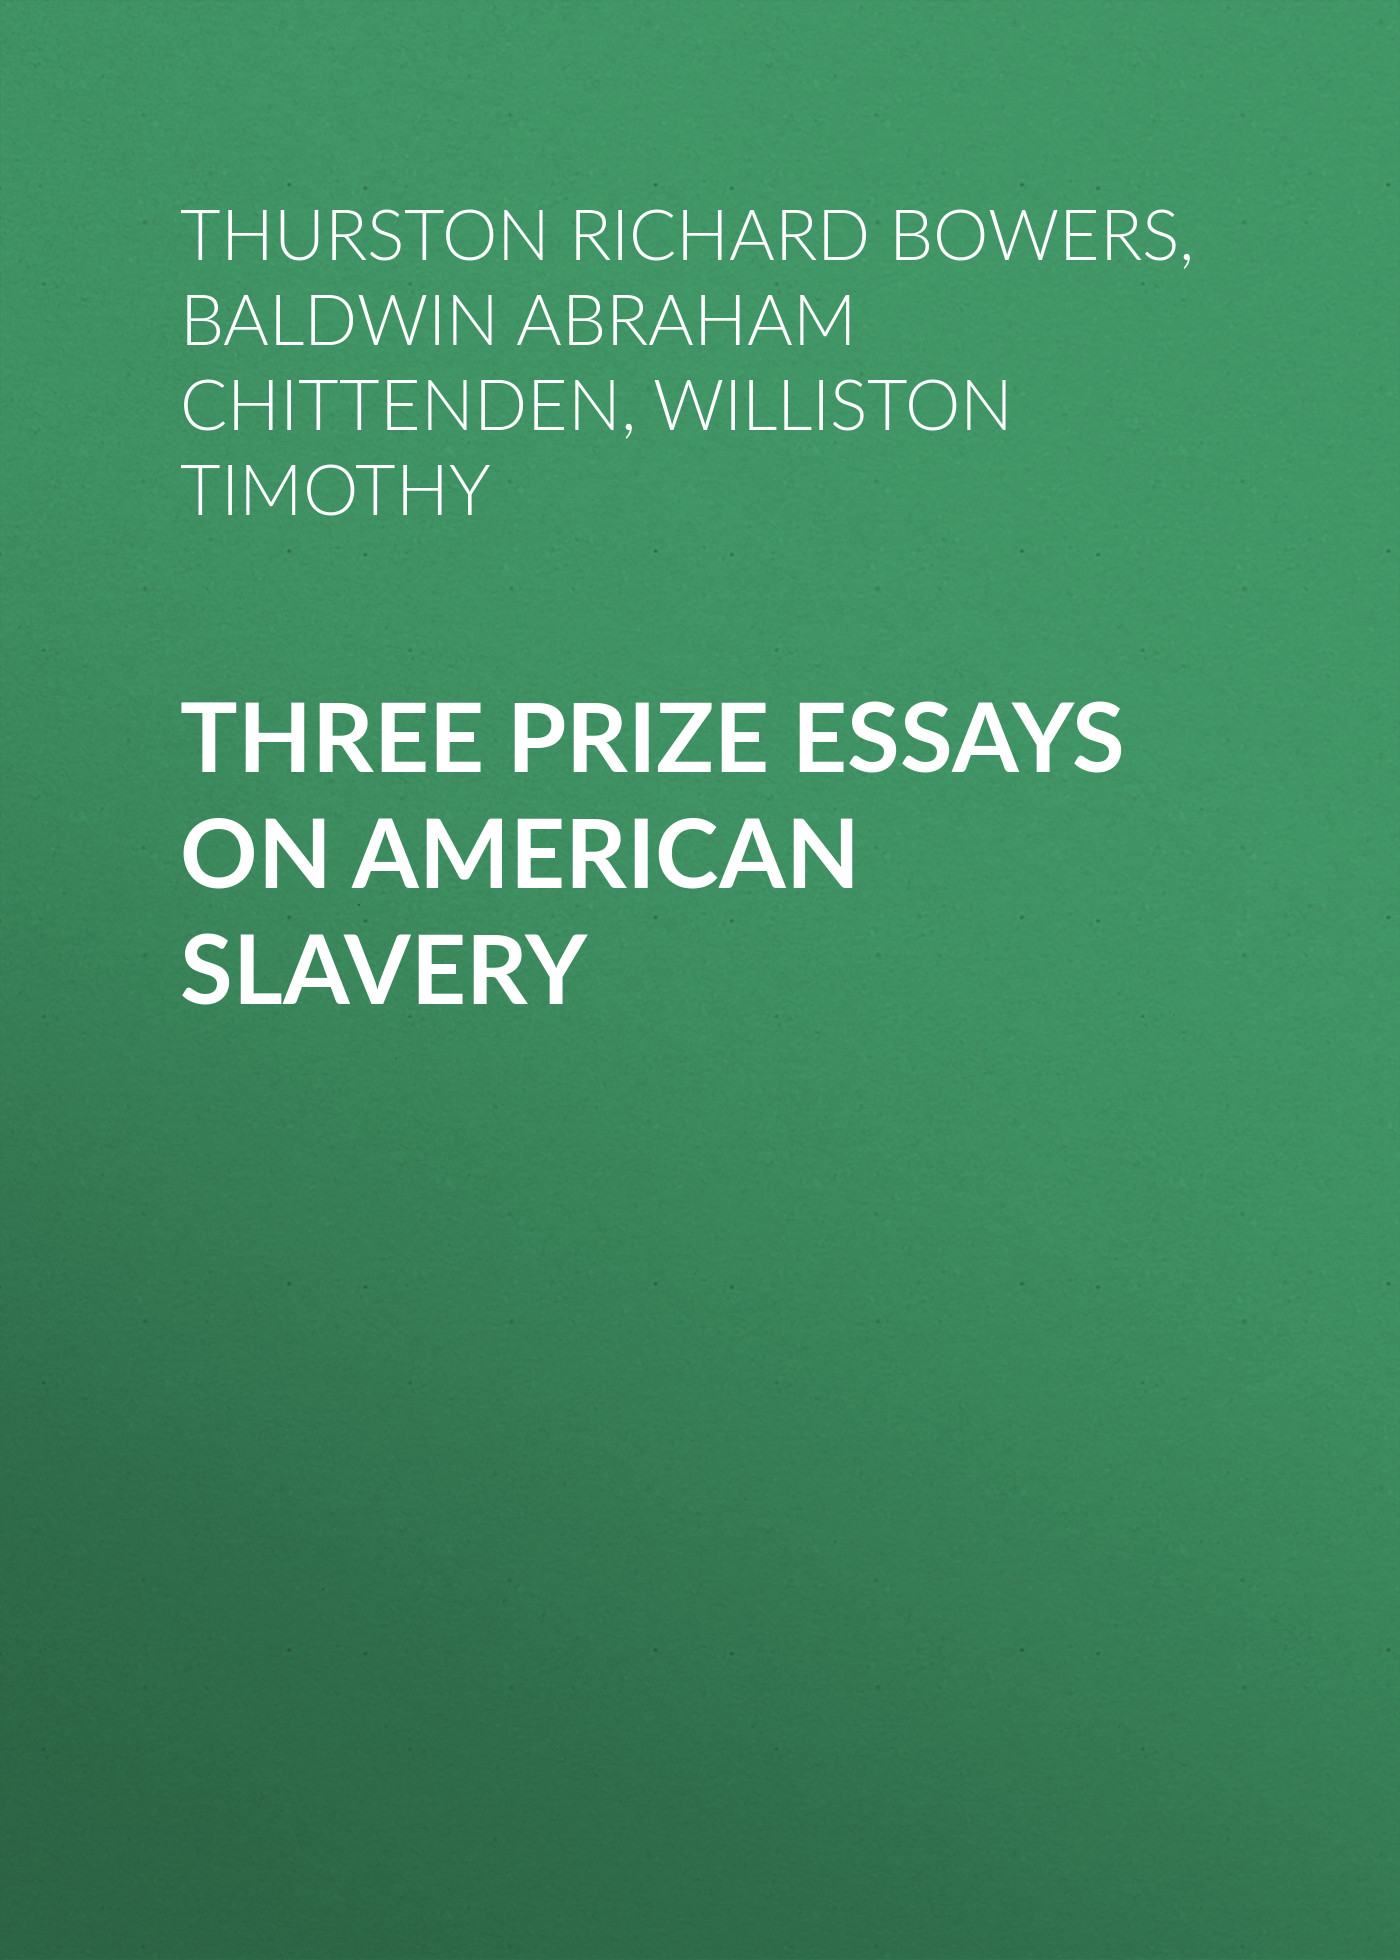 essays on parasitism Williston Timothy Three Prize Essays on American Slavery